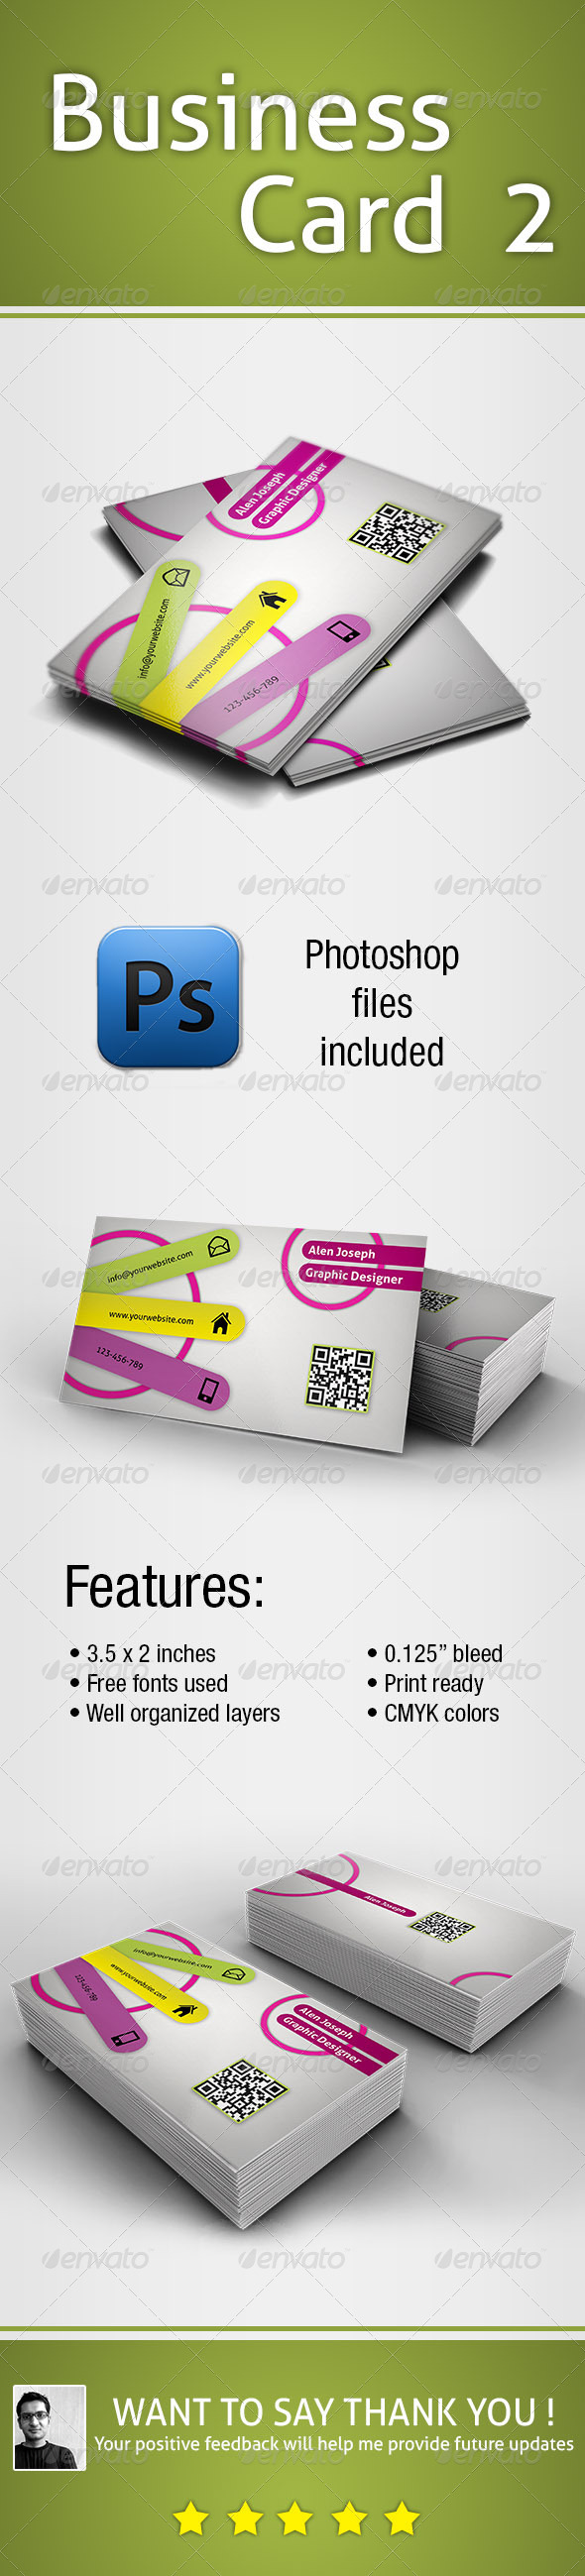 GraphicRiver Business Card 2 5562068